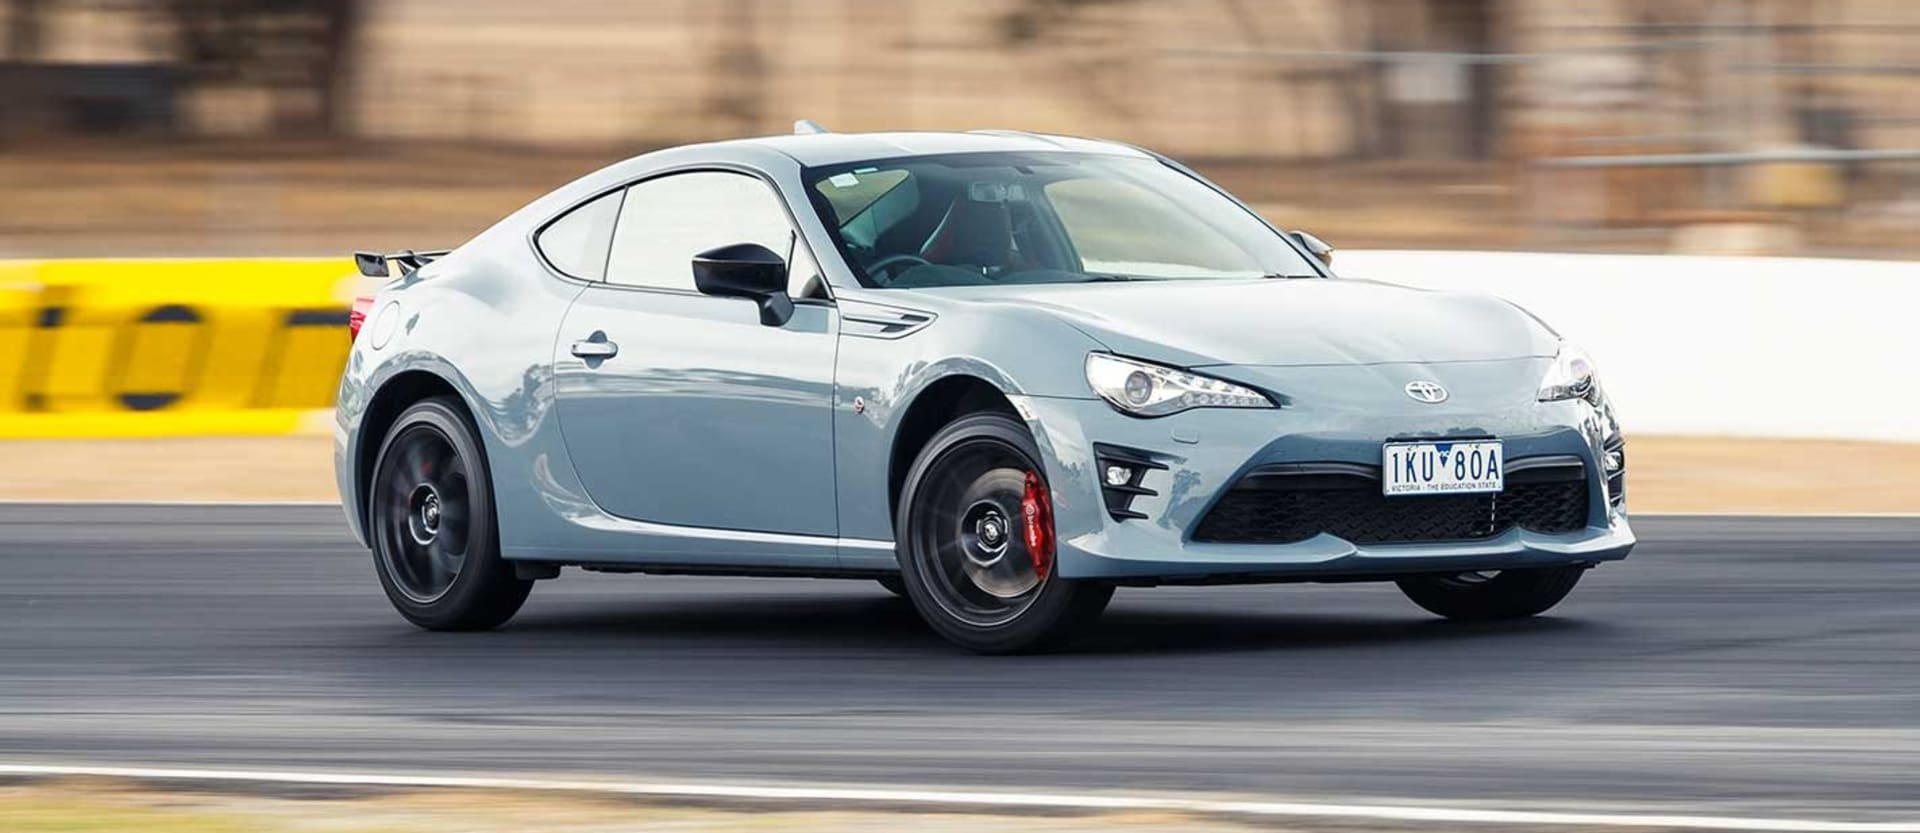 Next Toyota 86 under development